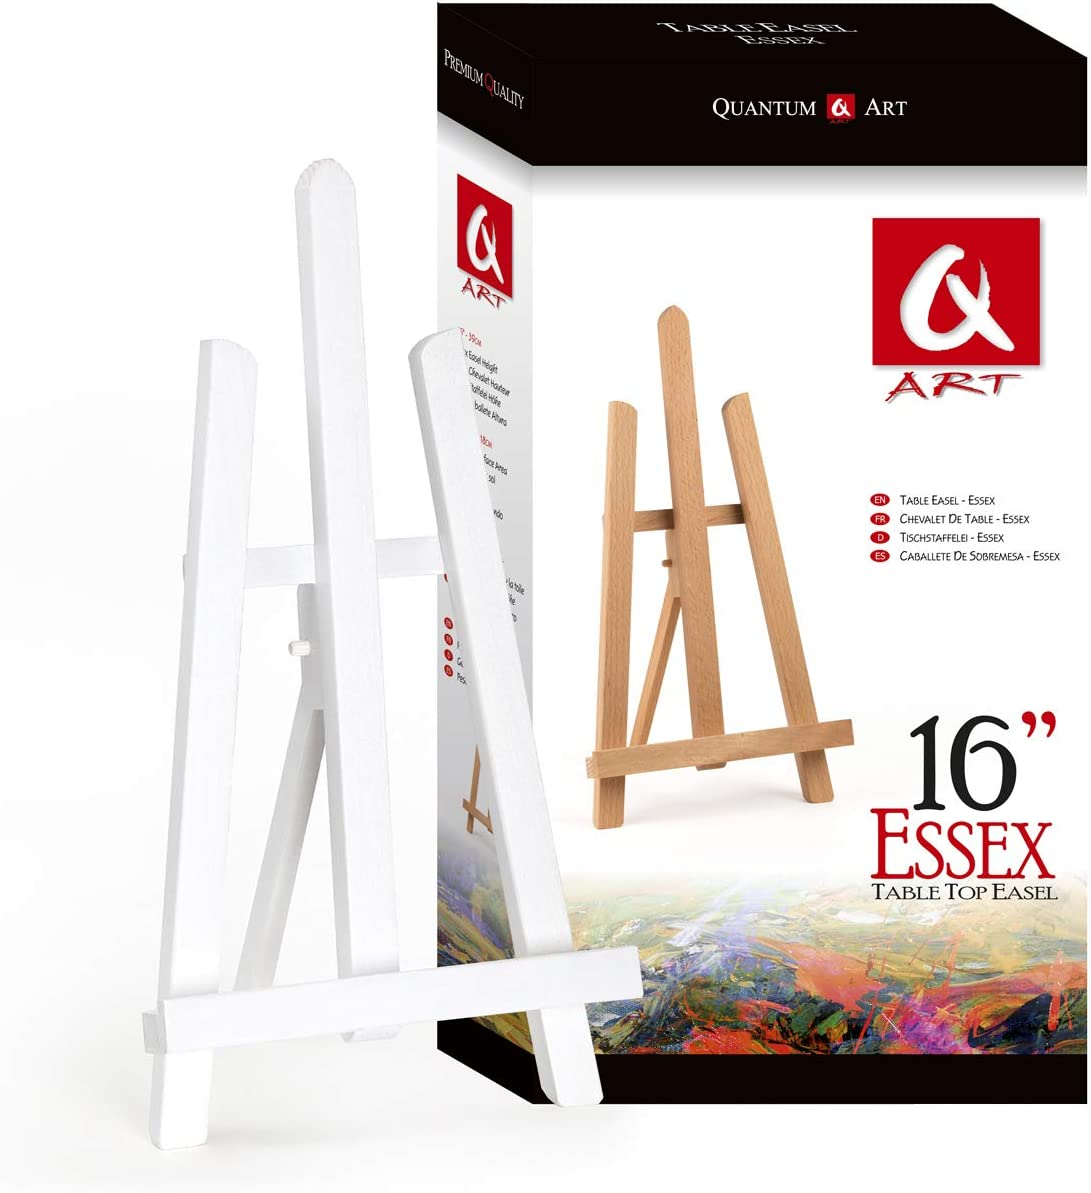 Beech Wood Quantum Art Essex Table Top Easel 600 mm-24-2 ft Brown